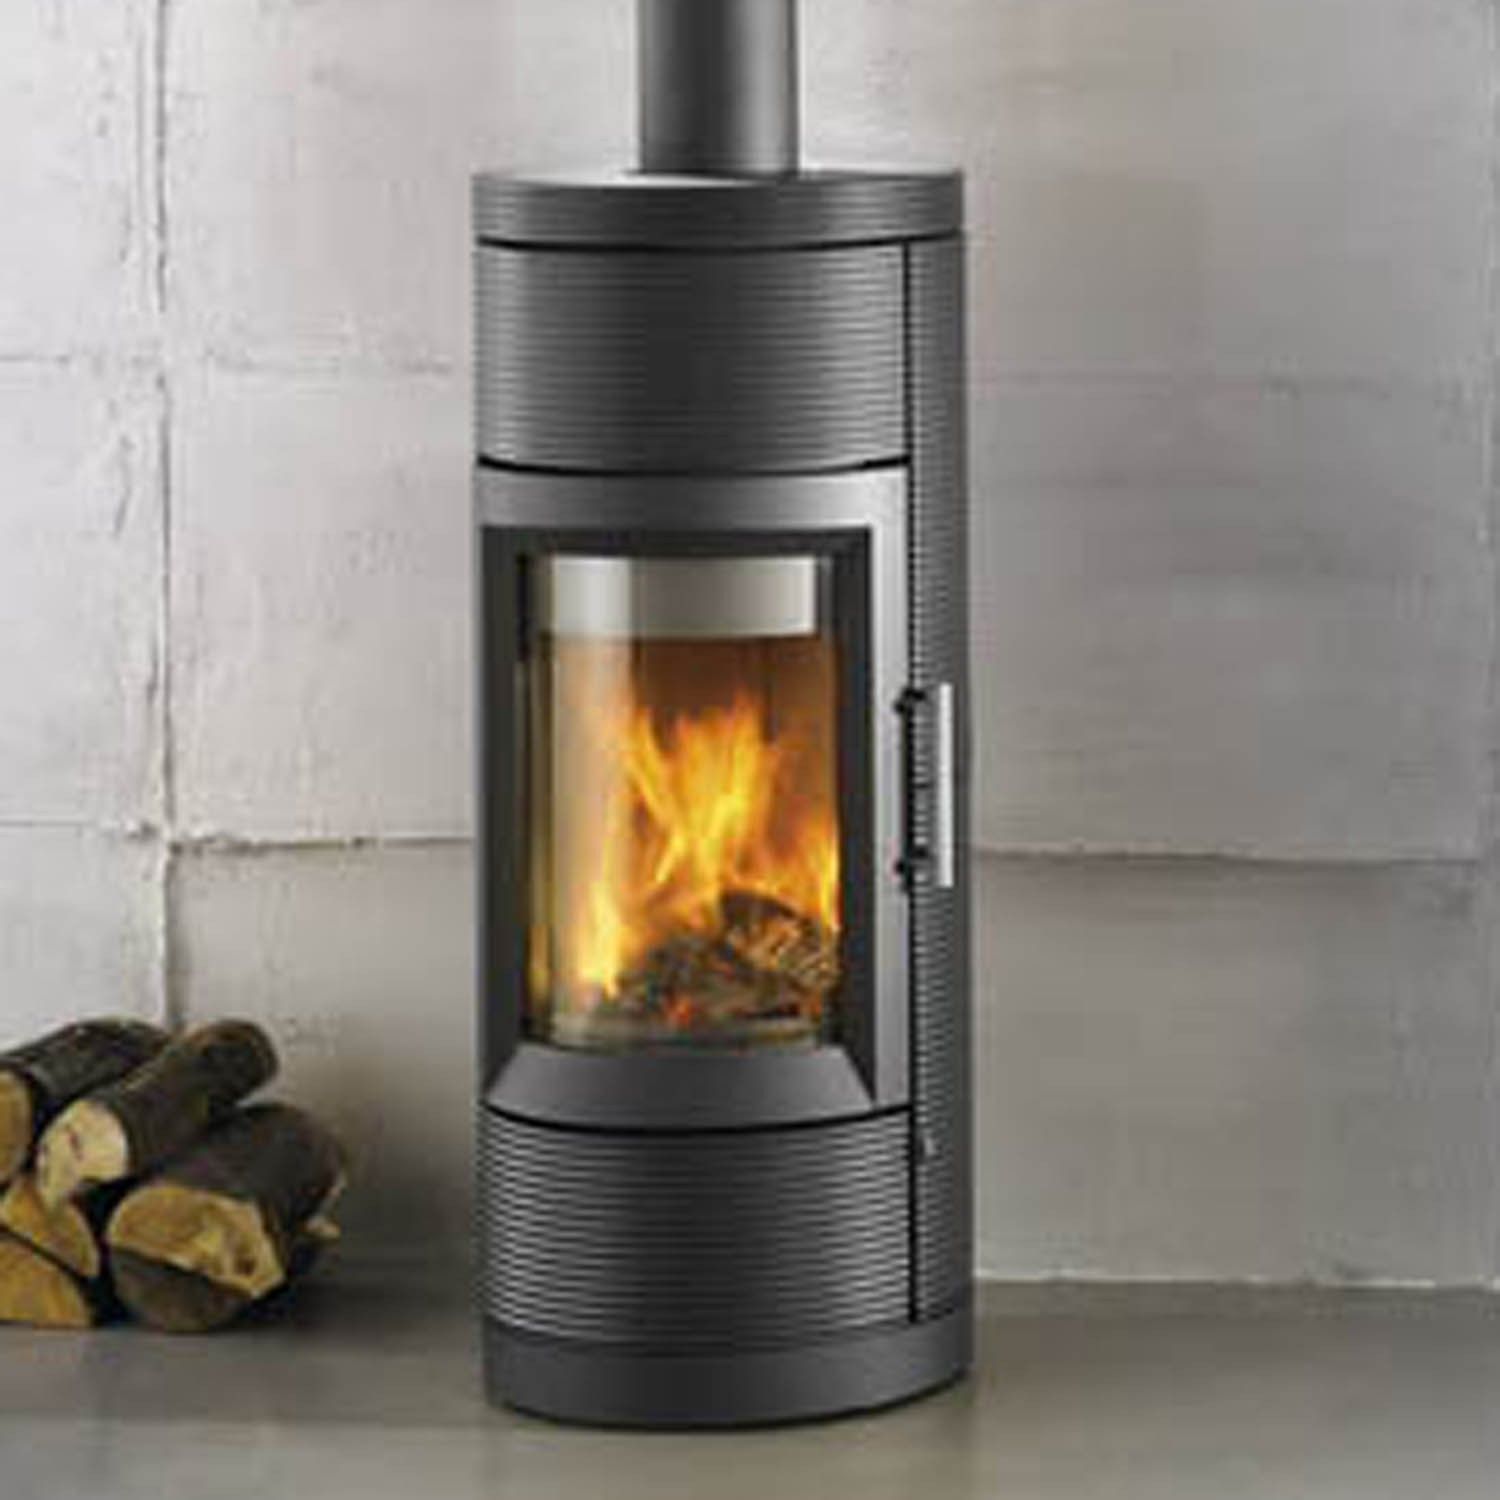 modern gas stoves wanders danta 1400 gas modern stoves m fizzyinc co